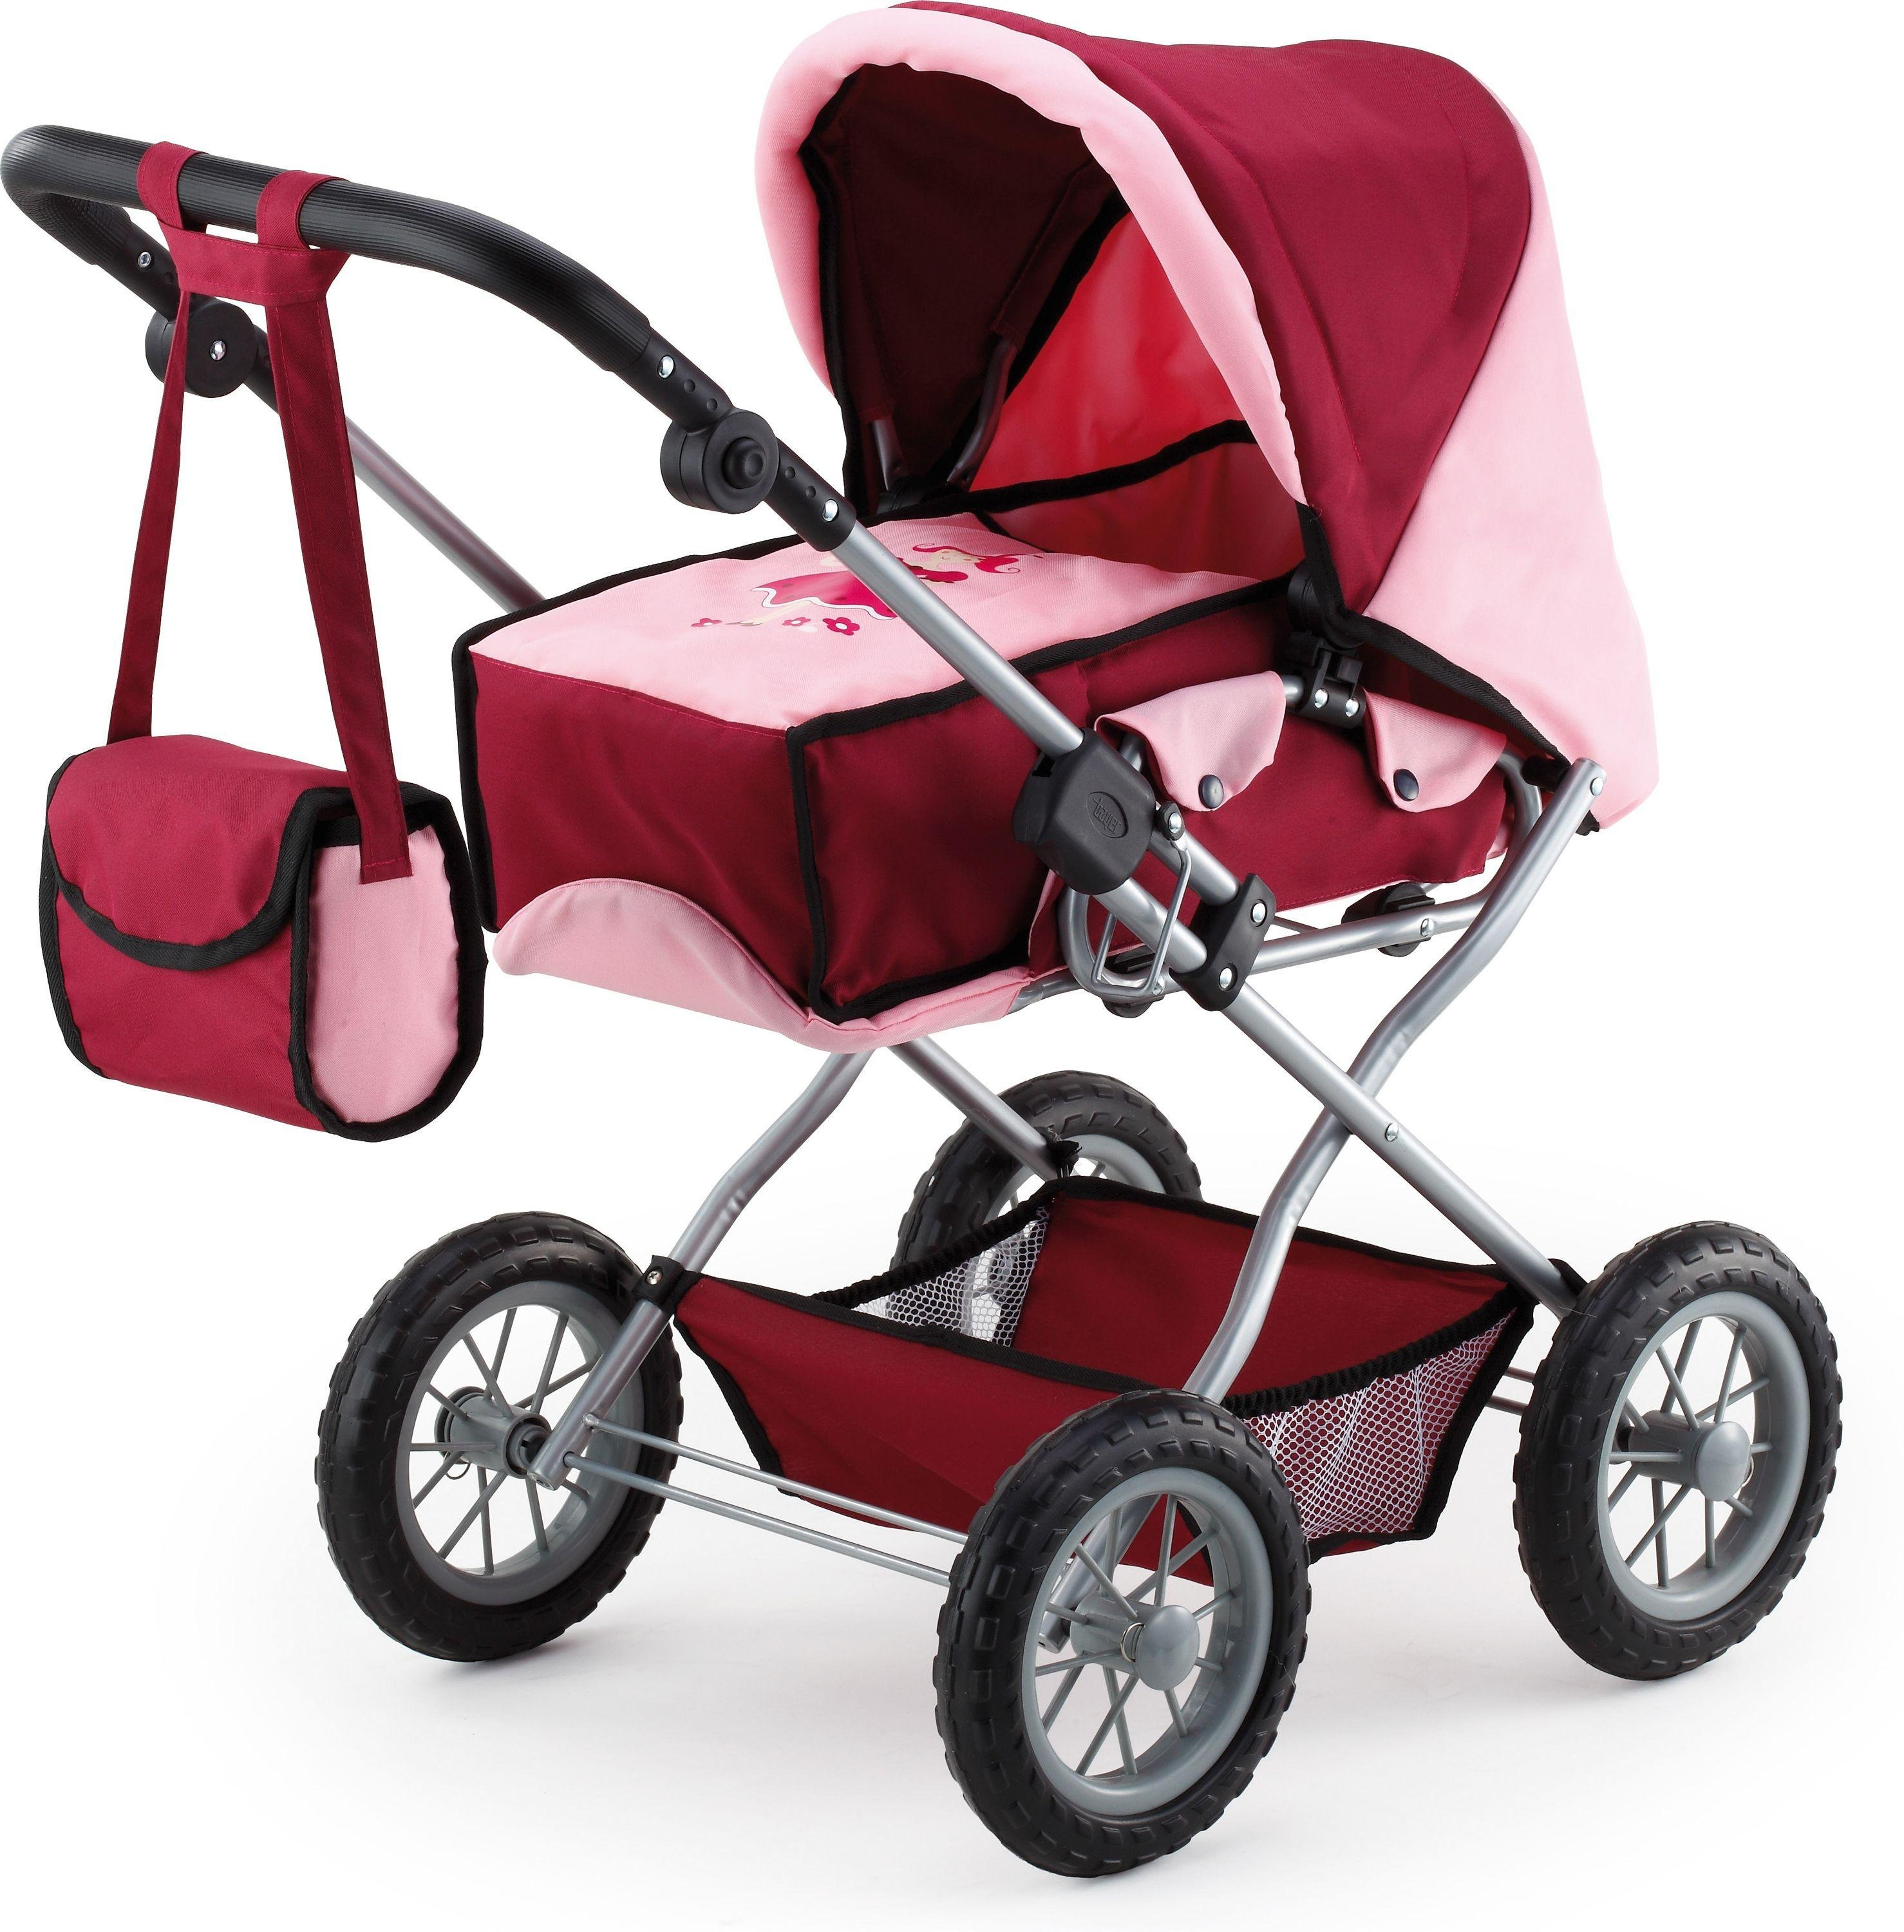 Image of Bayer - Combi Grande Doll's Pram - Bordeaux